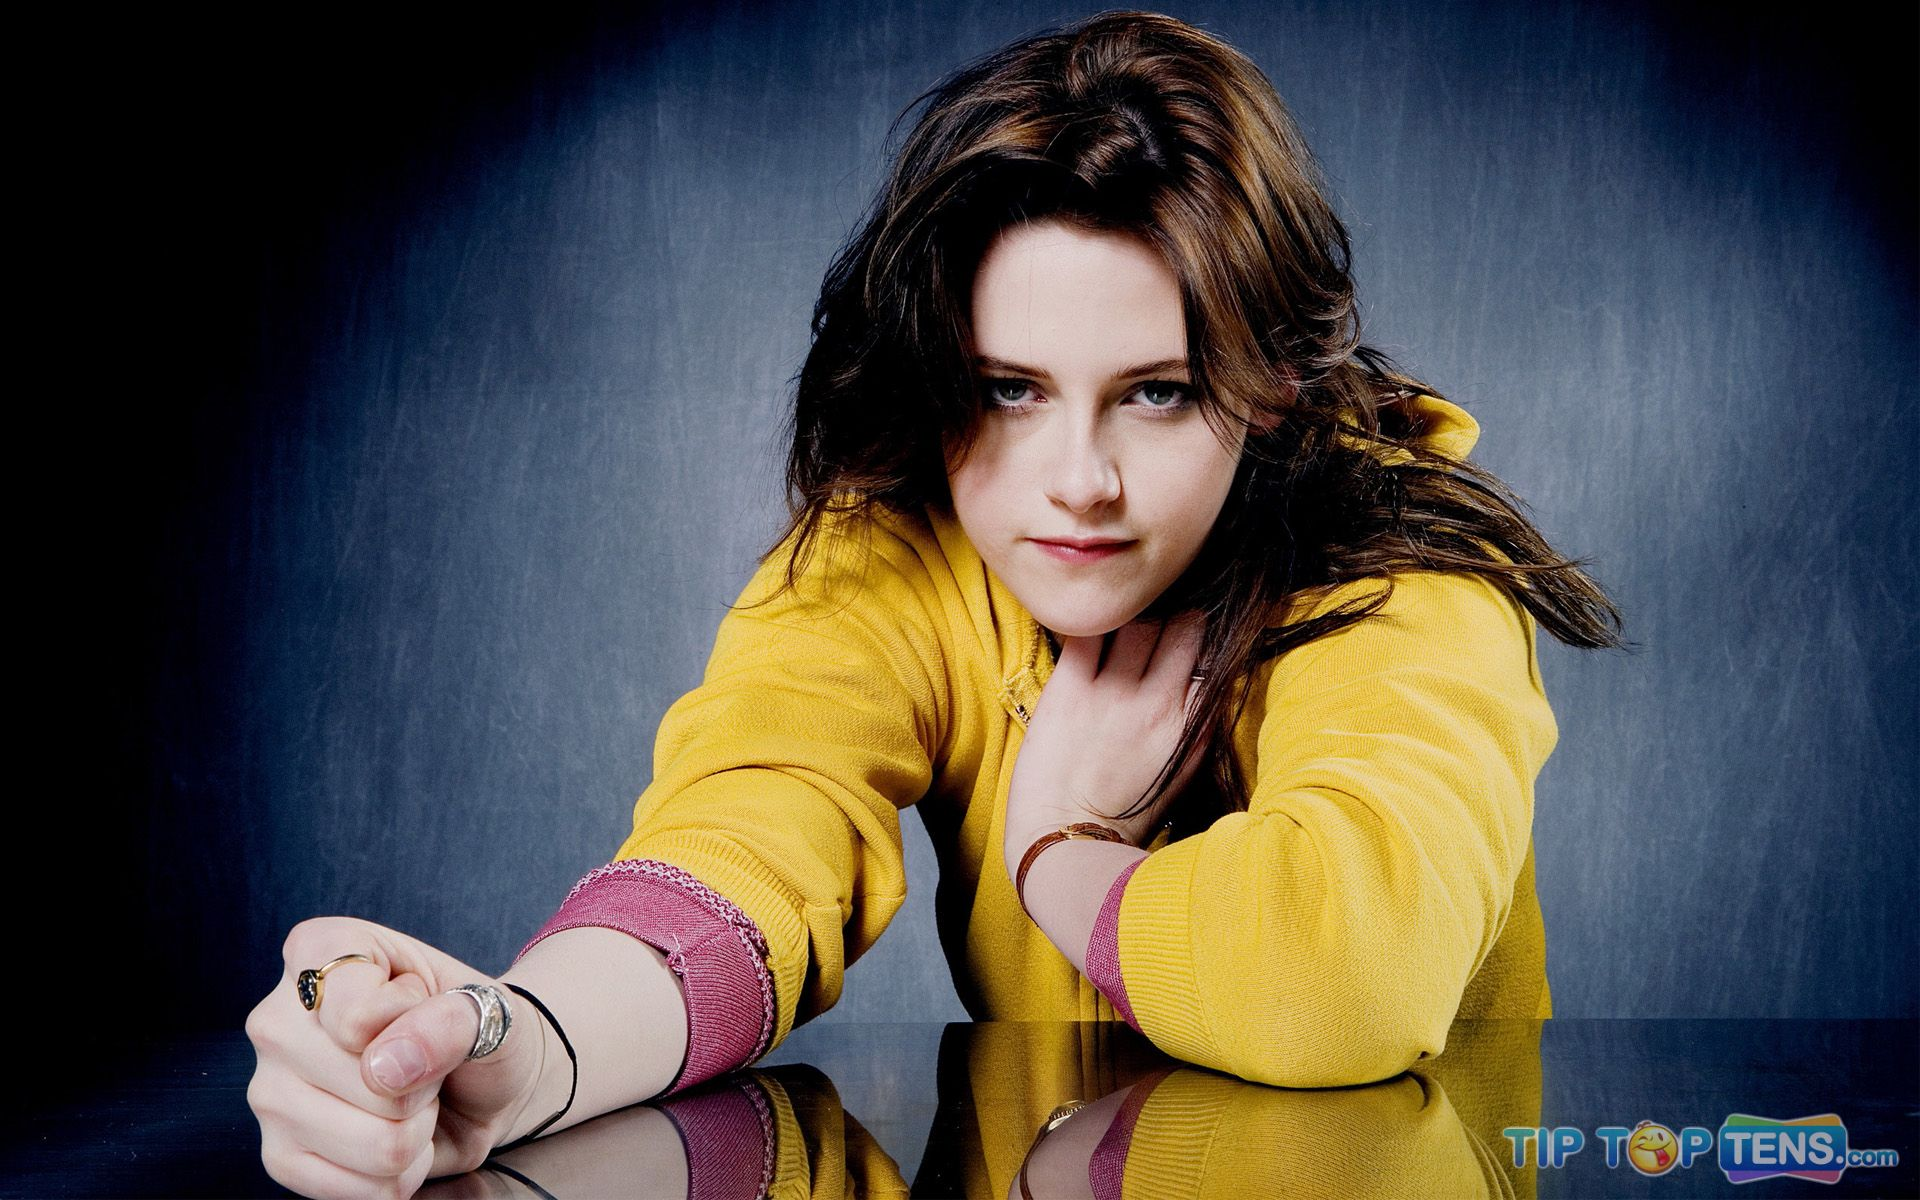 kristen stewart wallpaper 10 Hot Kristen Stewart Wallpapers